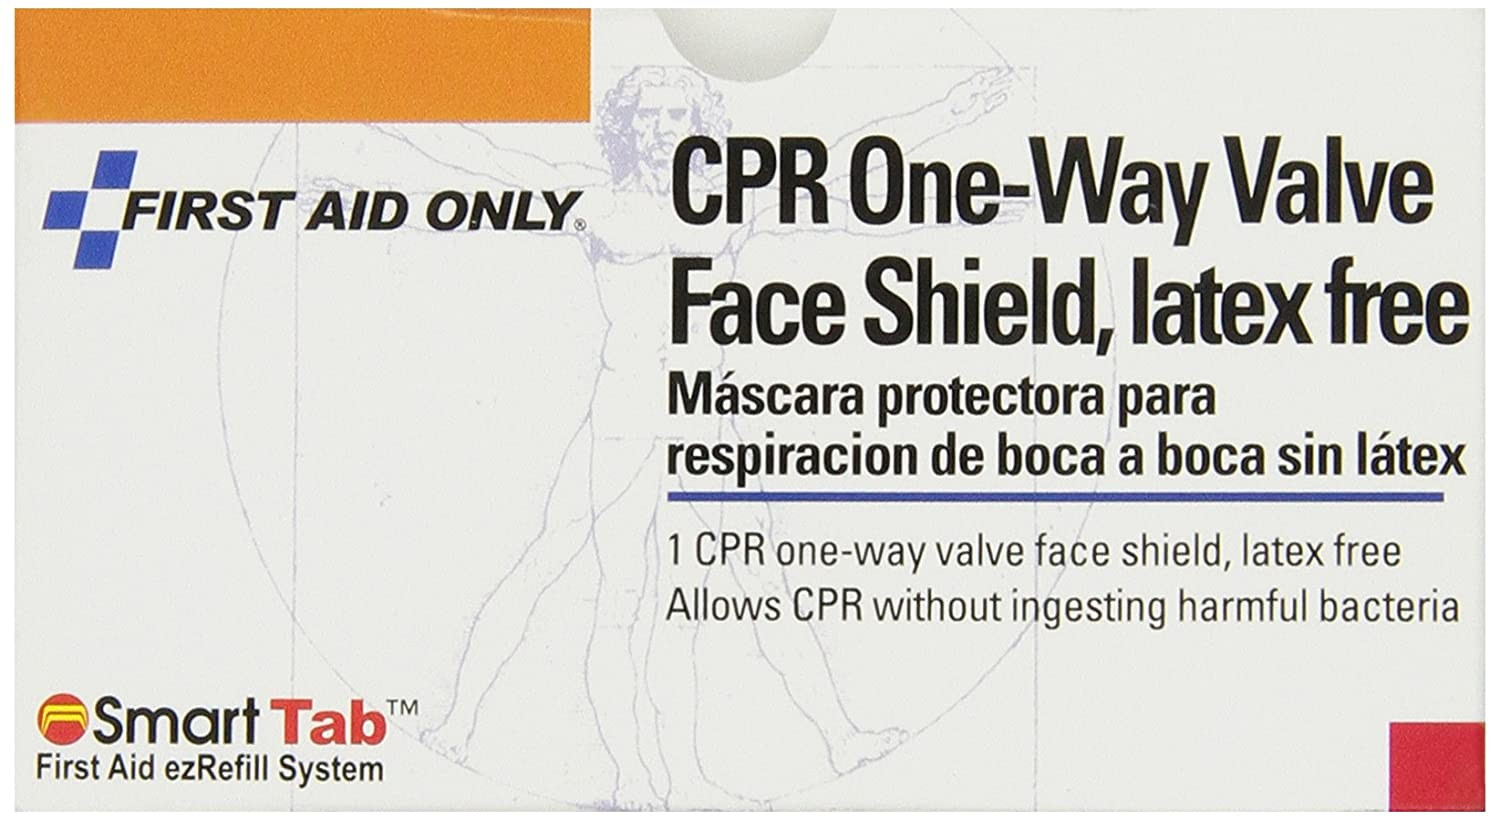 Amazon.com: First Aid Only CPR Faceshield, Latex-free, 1 Count: Health & Personal Care